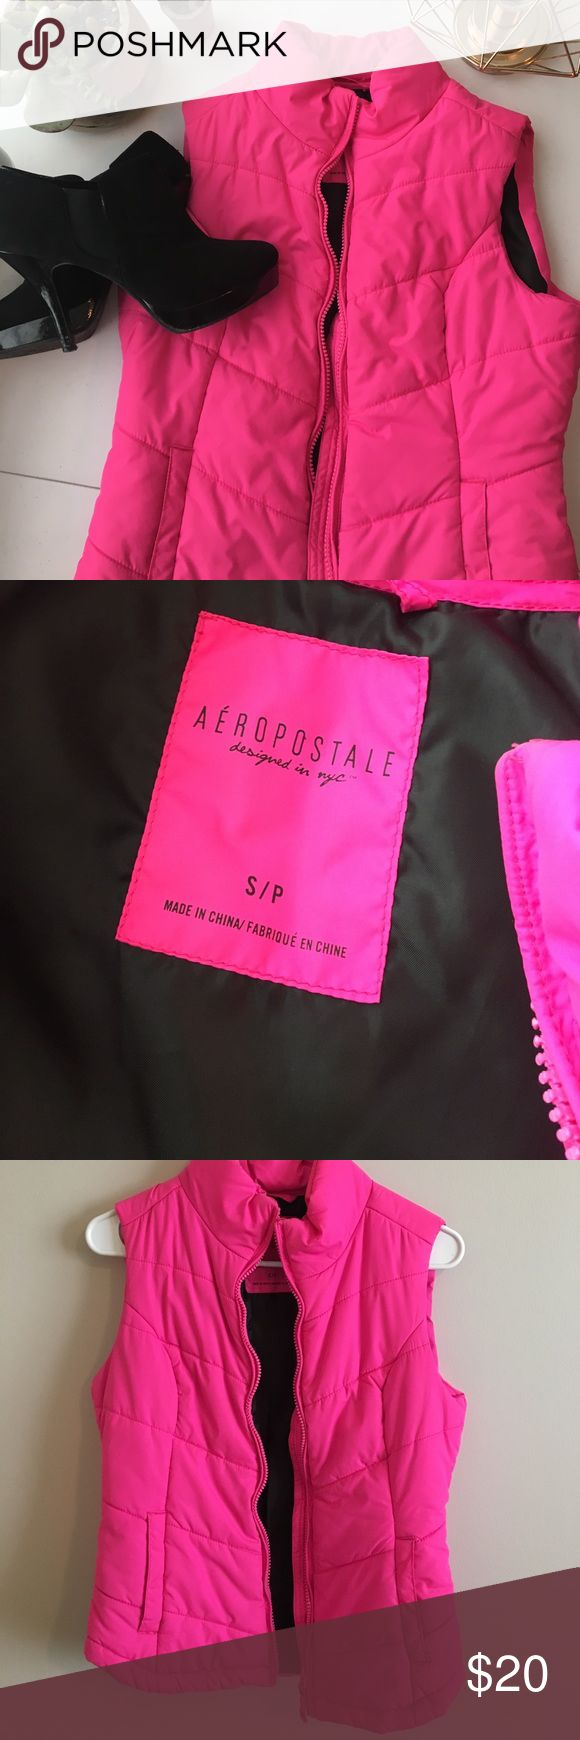 Hot pink vest ♥️great condition. Like new. Worn once.                                  ♥️says S/P  fits a small or medium.                                      ♥️Super fun and cute on.                                                                                         ♥️bundle discounts available.                                             ♥️open to trades and offers. Aeropostale Jackets & Coats Vests